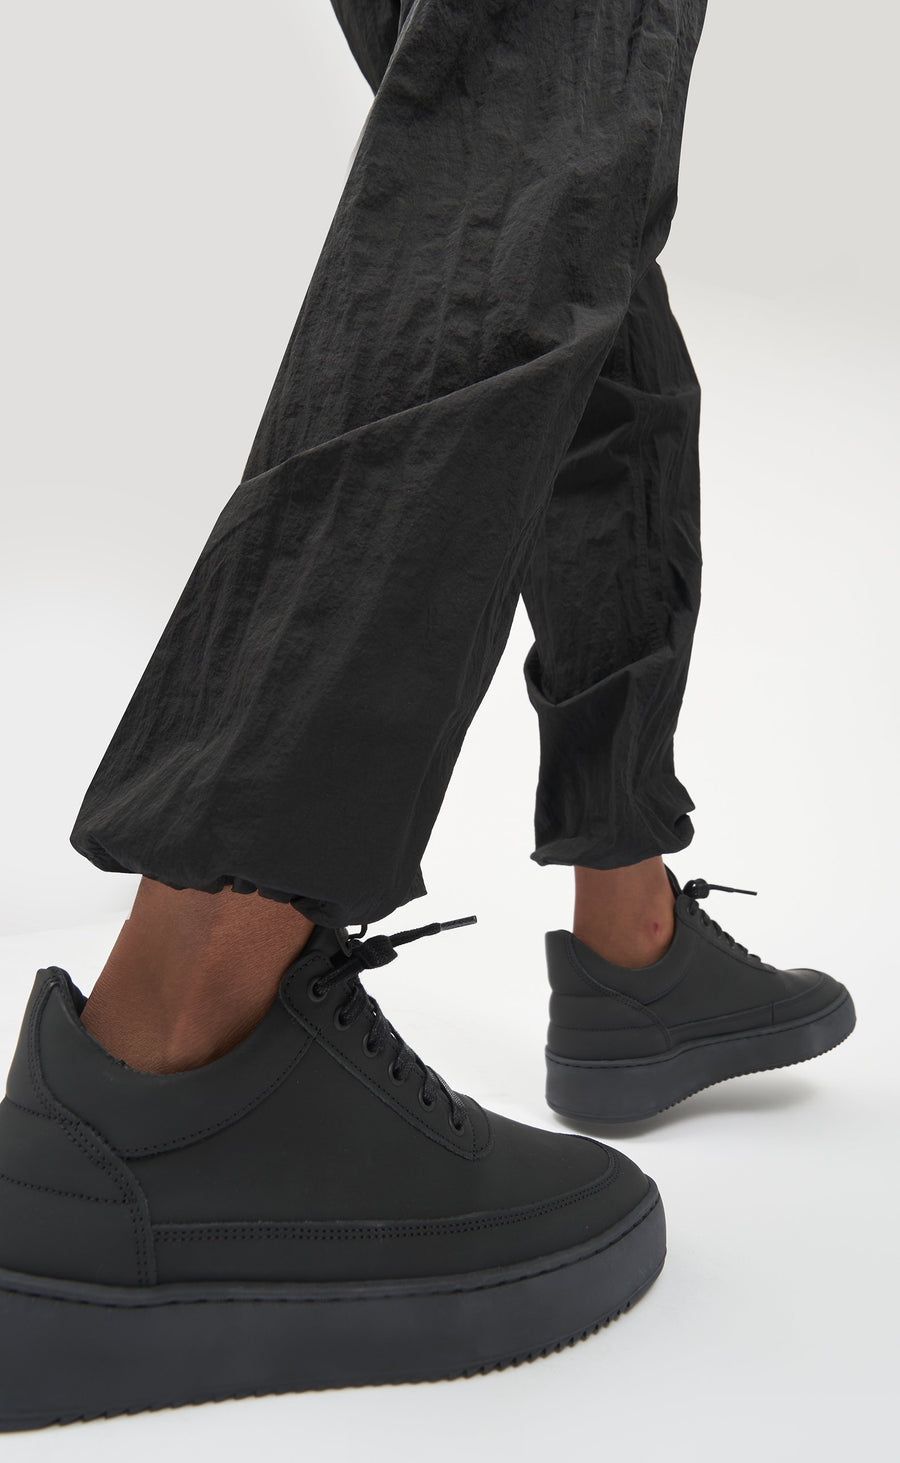 Low Top Ripple Coal All Black - men